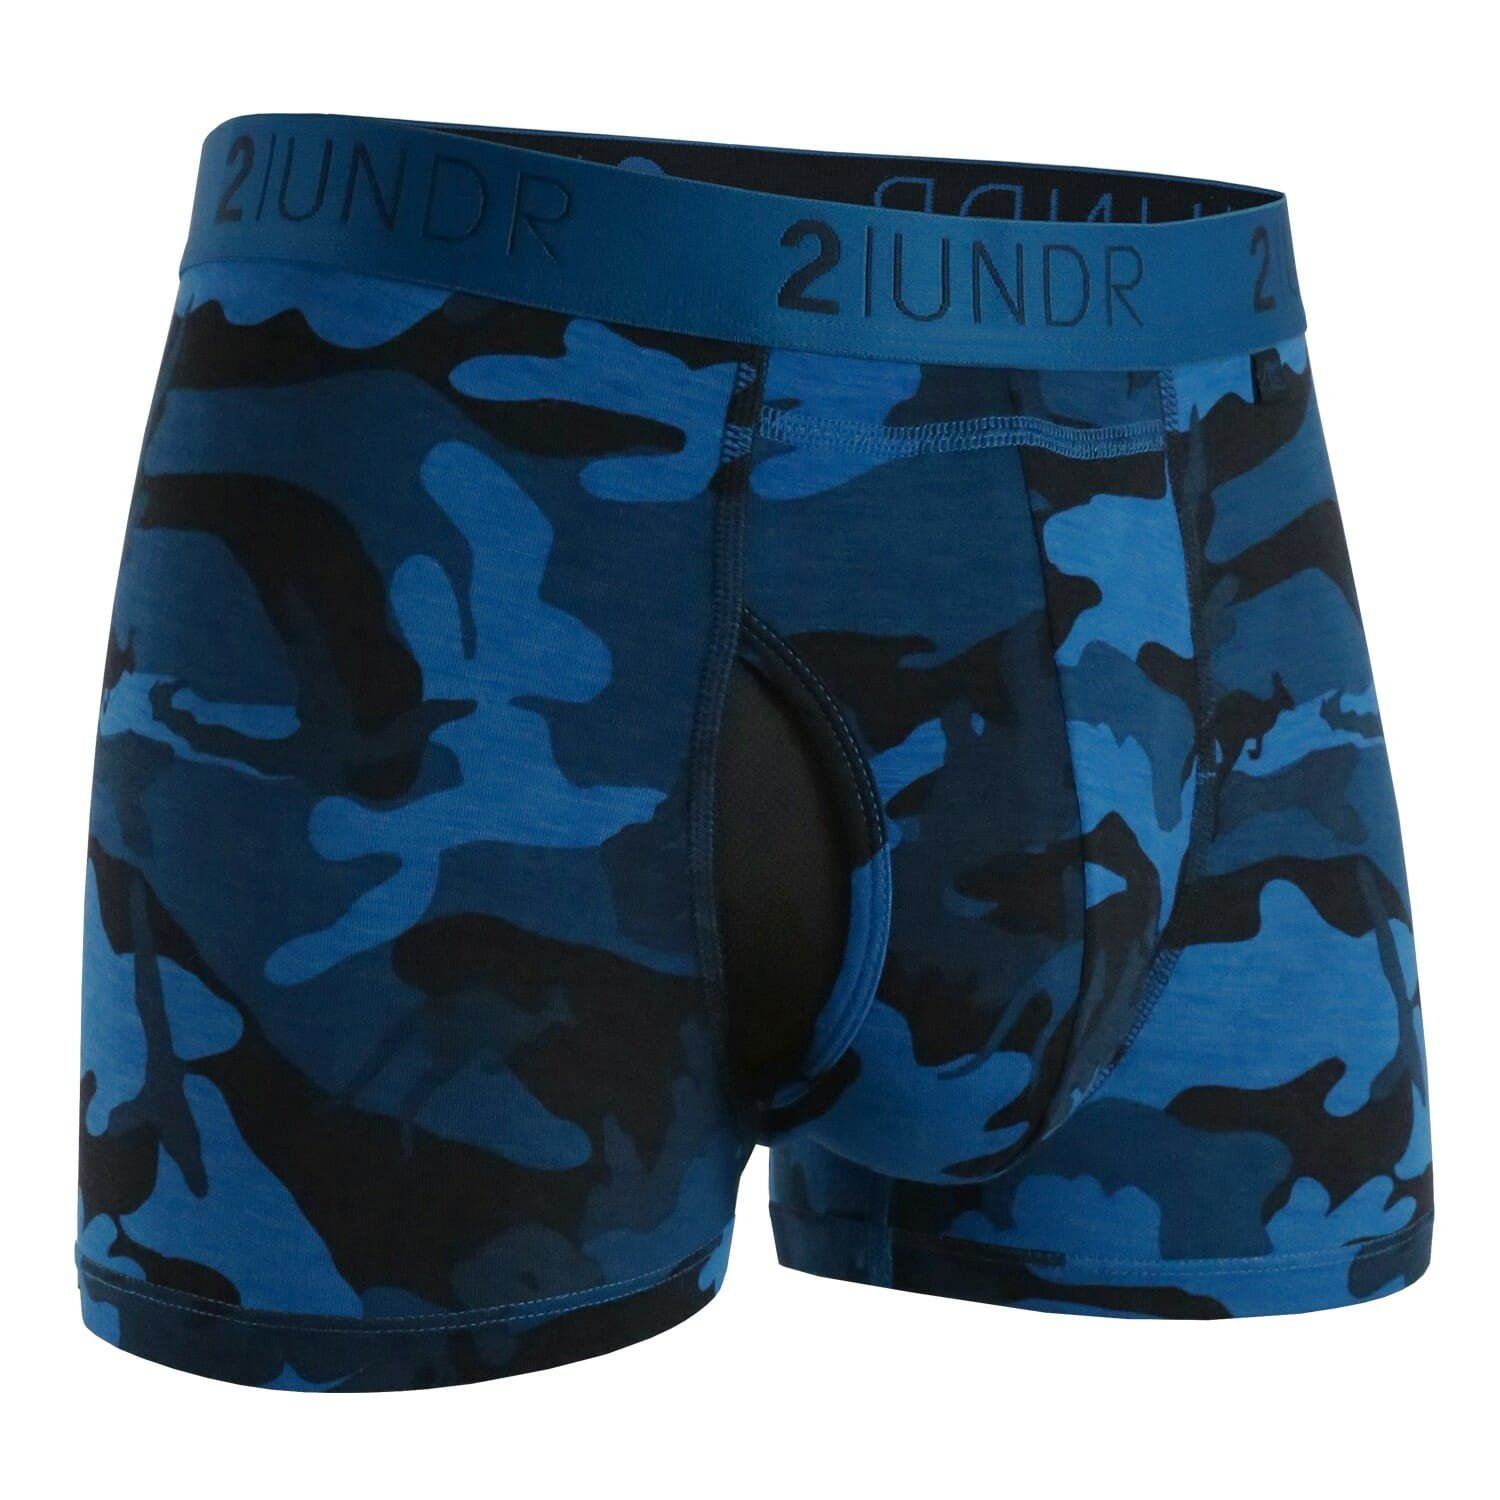 2UNDR Gear Shift Men's Joey Pouch Performance Underwear for Better Support, Less Chafing and Enhanced Profile. Compression Fit aids Sporting Performance. Trunk Style